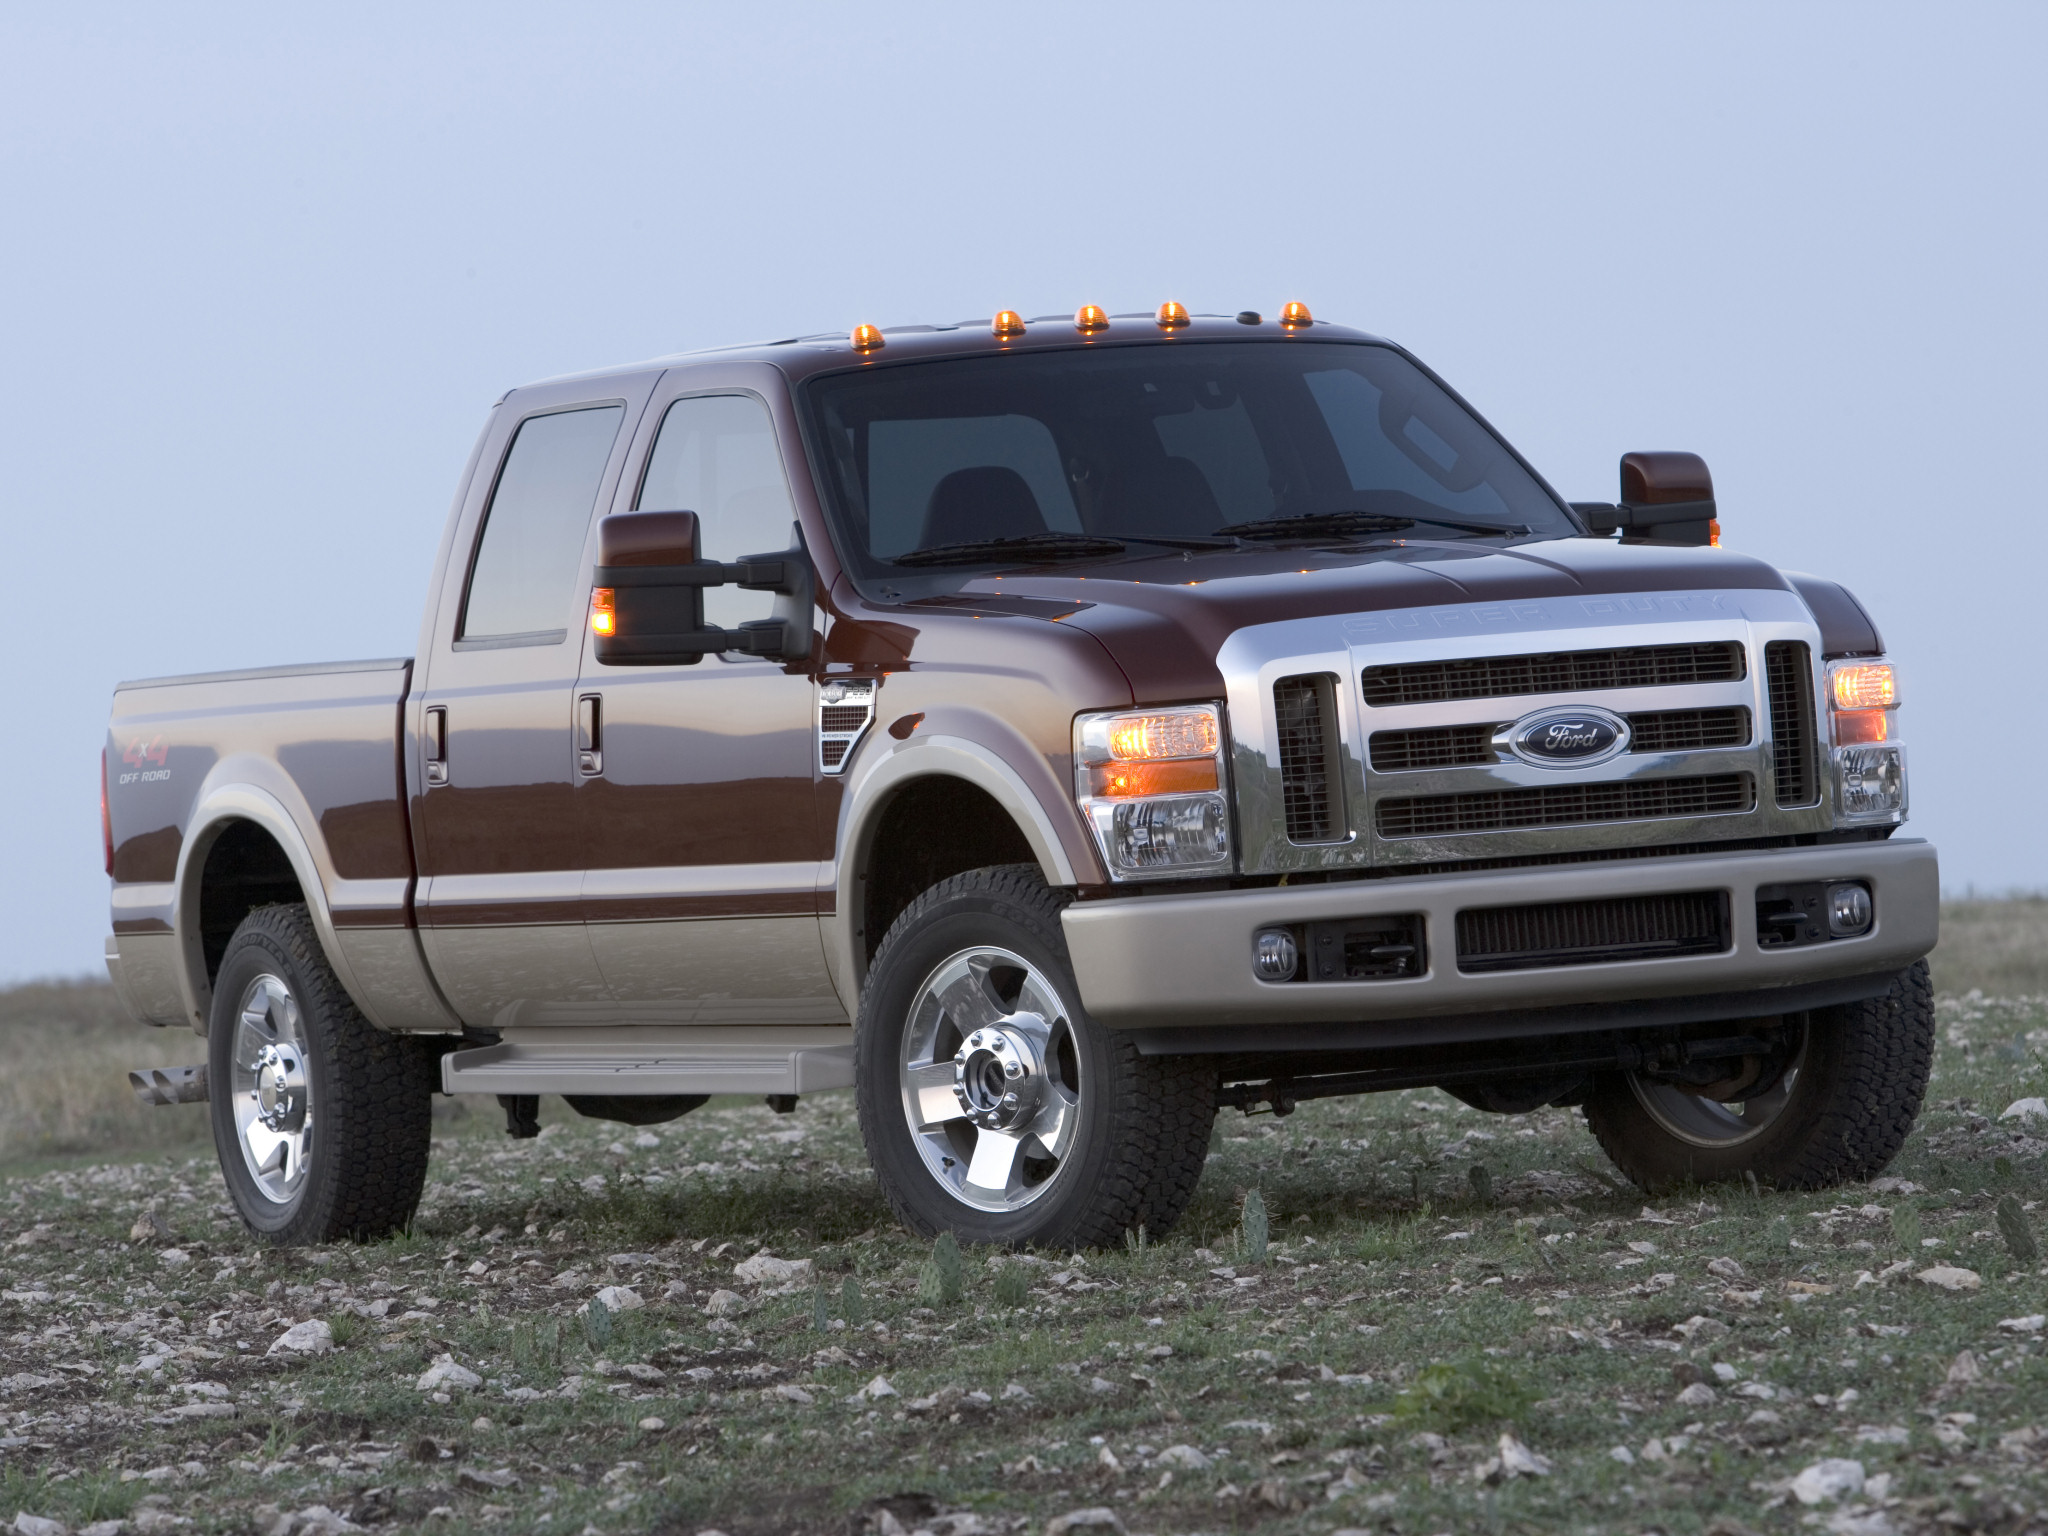 2008 ford f 250 super duty information and photos zombiedrive. Black Bedroom Furniture Sets. Home Design Ideas